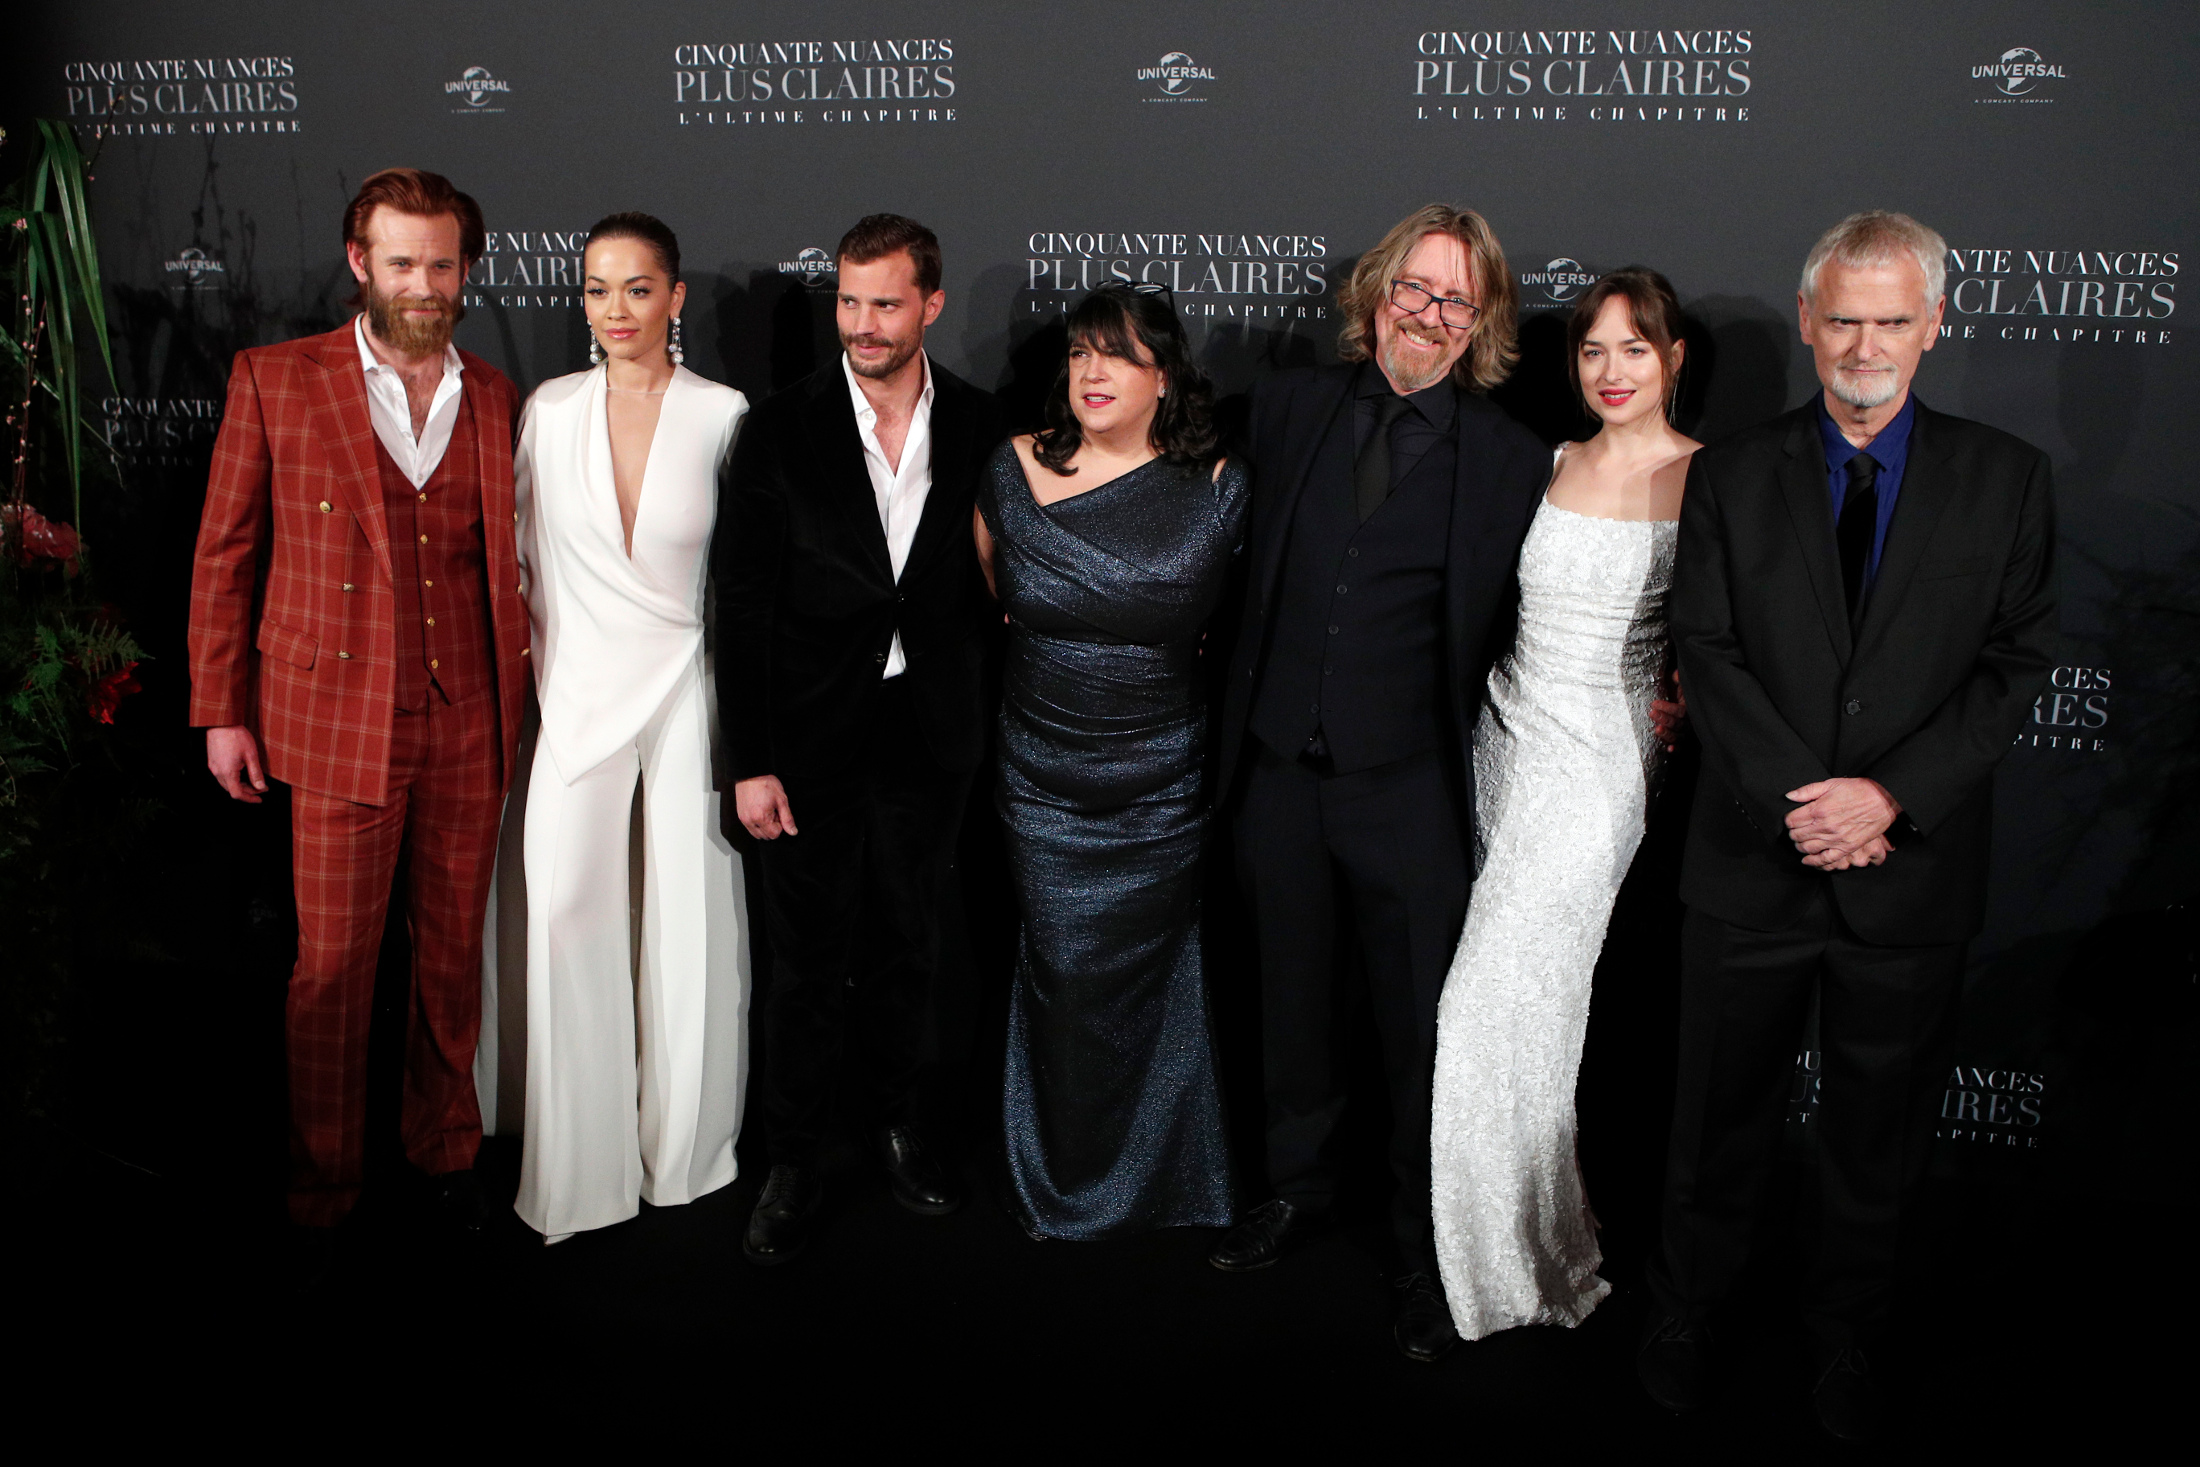 From left to right, Eric Johnson, Rita Ora, Jamie Dornan, E.L. James, a guest, Dakota Johnson, and James Foley pose during a photocall for the world premiere of 'Fifty Shades Freed - 50 Nuances Plus Claires' at Salle Pleyel in Paris, Tuesday, Feb. 6, 2018. (AP Photo/Francois Mori)